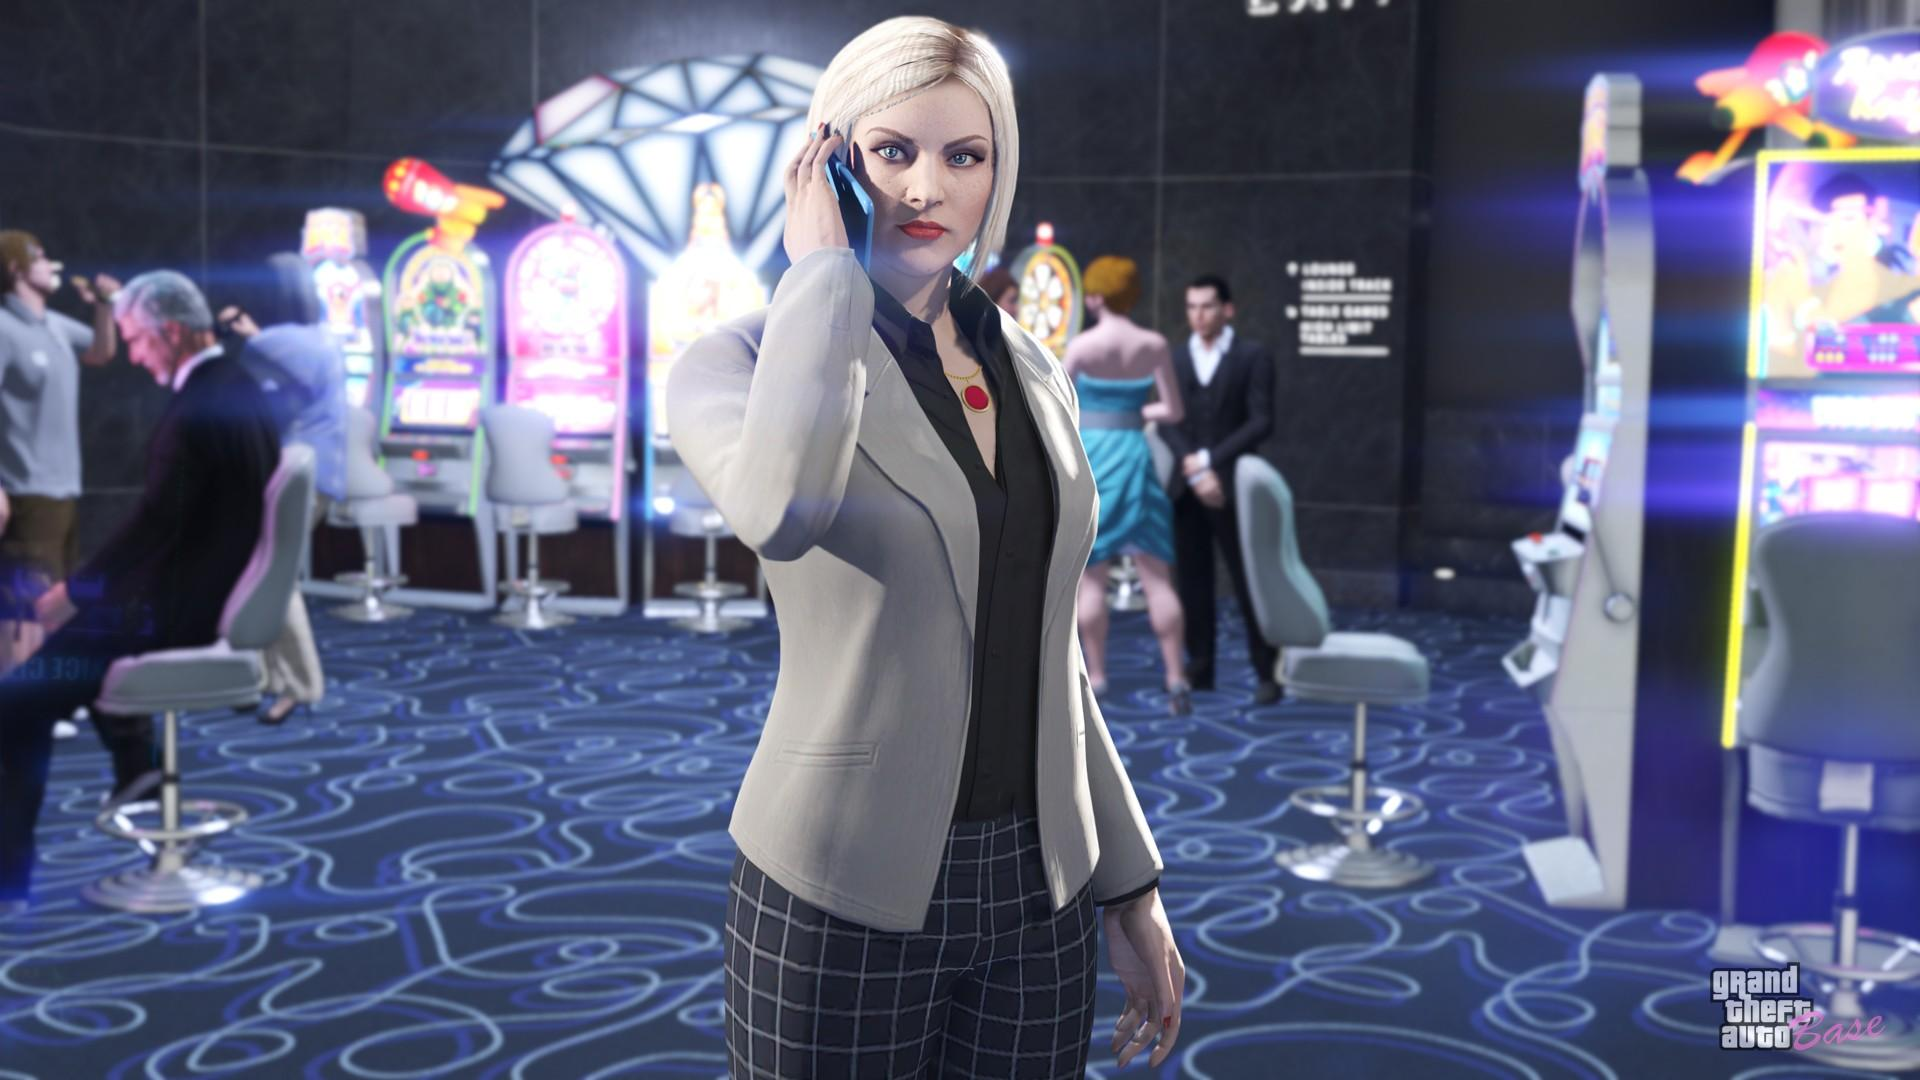 gta-on-the-web:-triple-benefits-on-casino-story-missions,-diamond-as-casino-loot,-discoutns-&-far-more